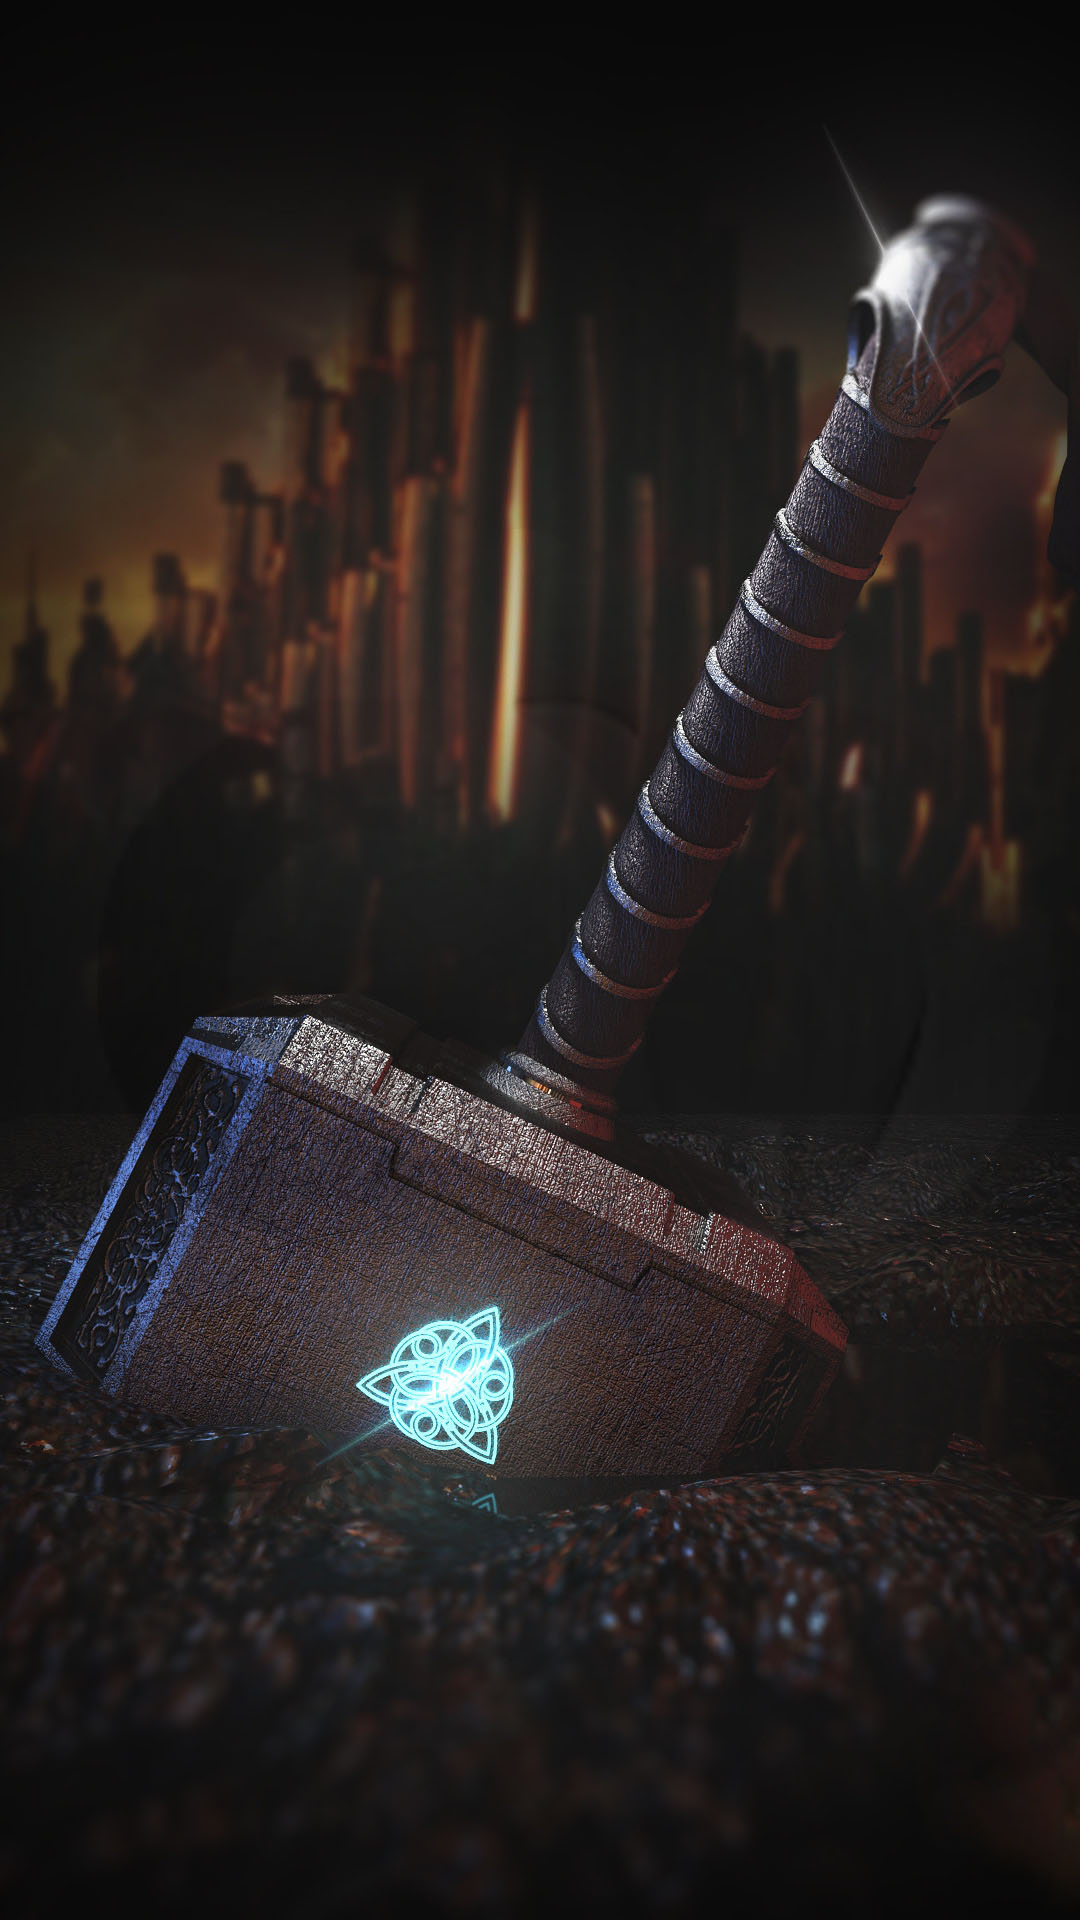 Cute Iphone Wallpapers For Girls Thor Hammer Iphone Wallpaper Iphone Wallpapers